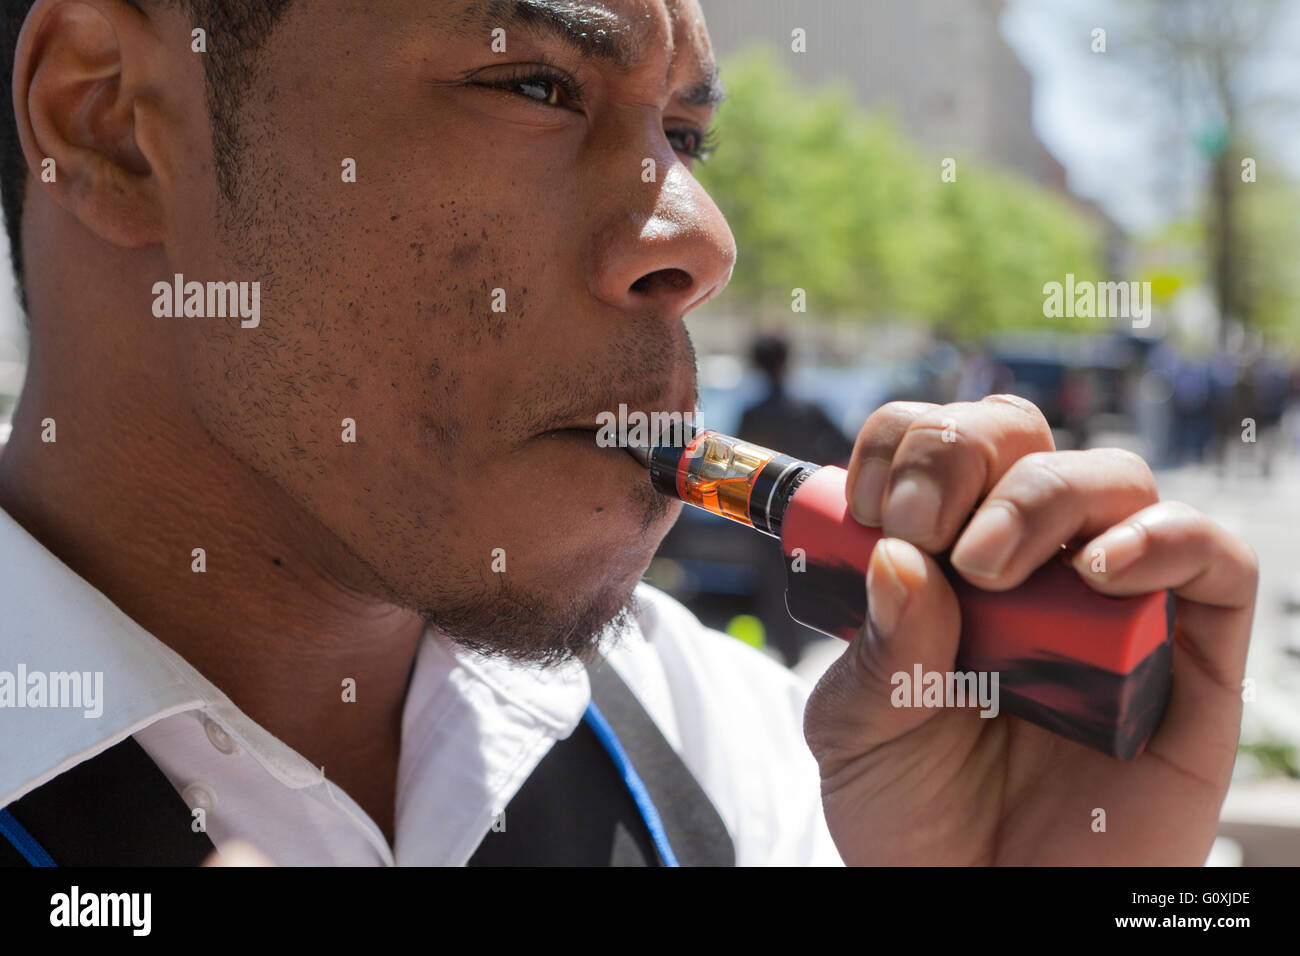 Young African-American man using an e-cigarette - USA - Stock Image